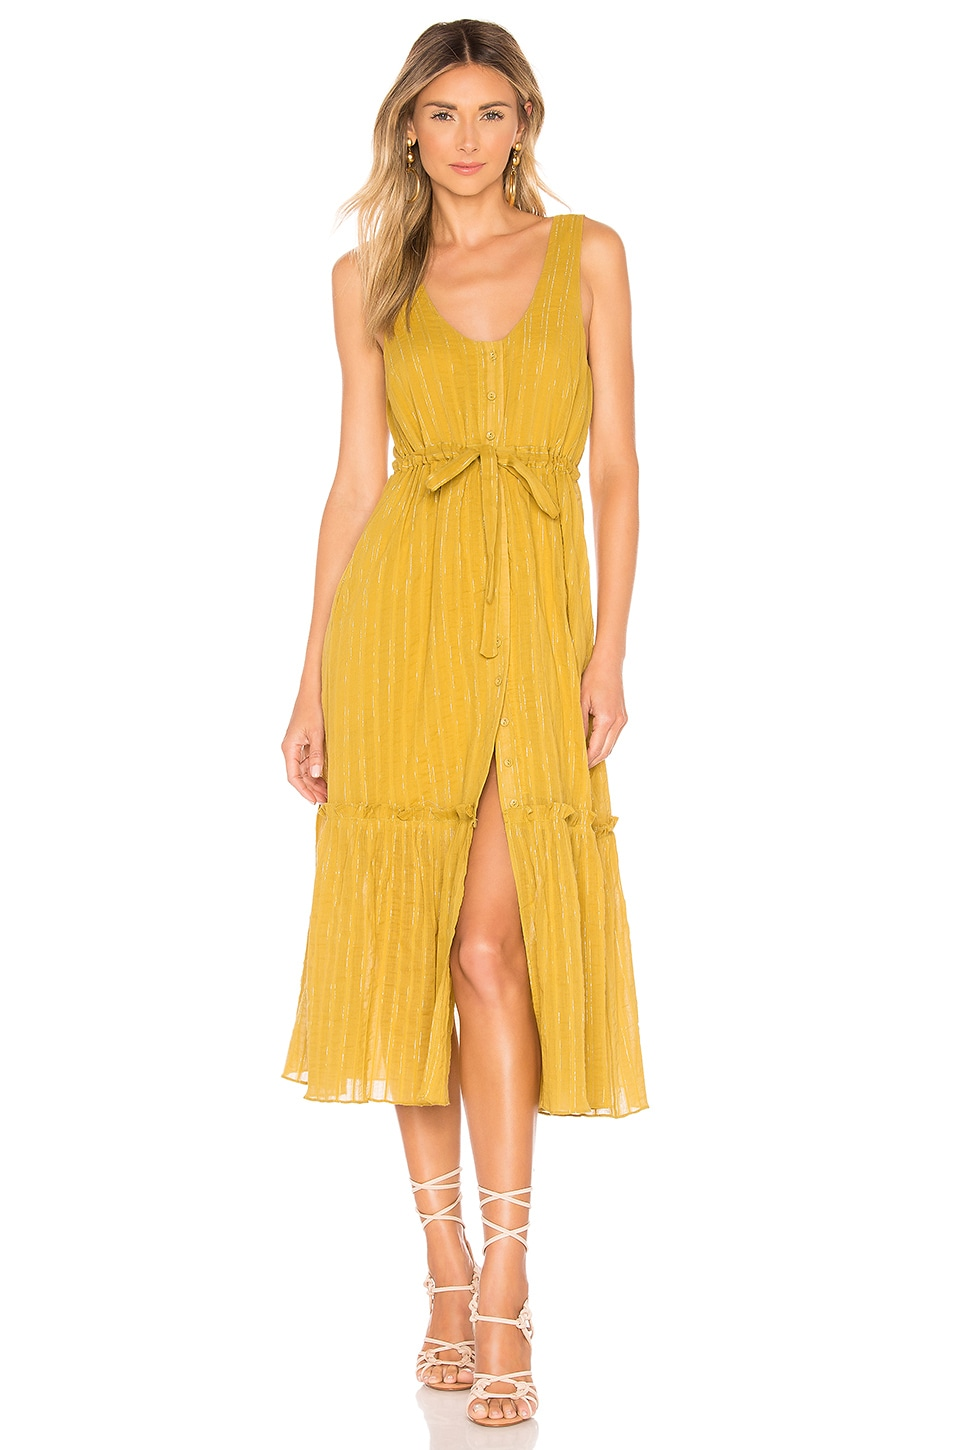 Tularosa Monroe Dress in Pear Yellow